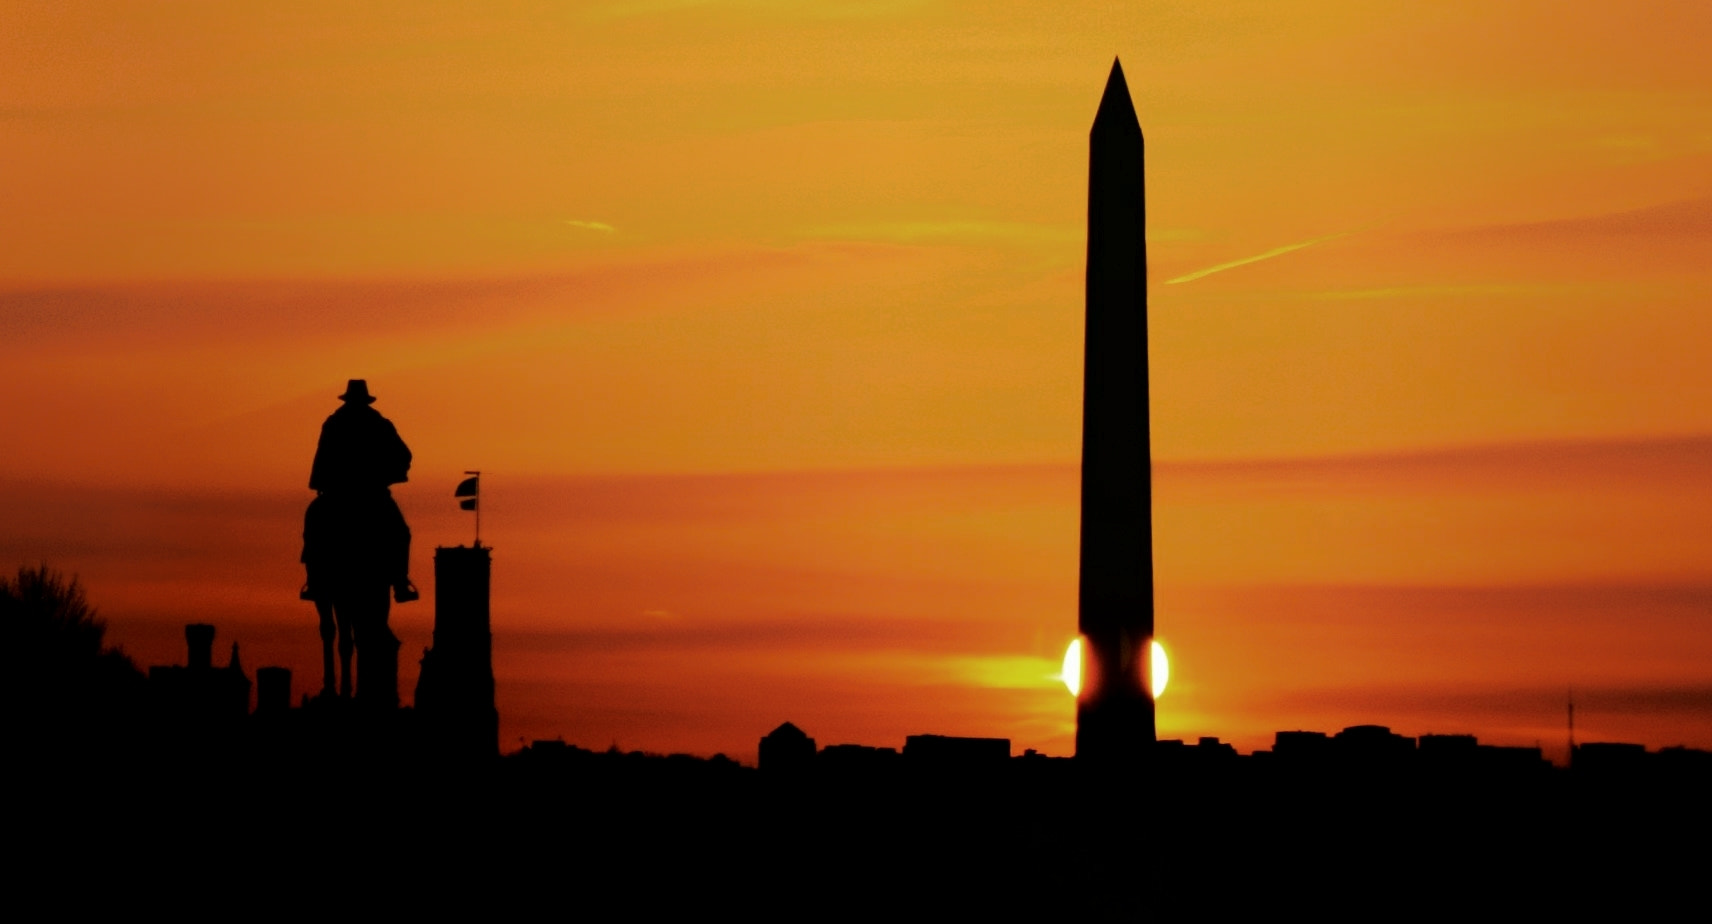 Photograph Washington D.C. Sunset by Jag Canape on 500px